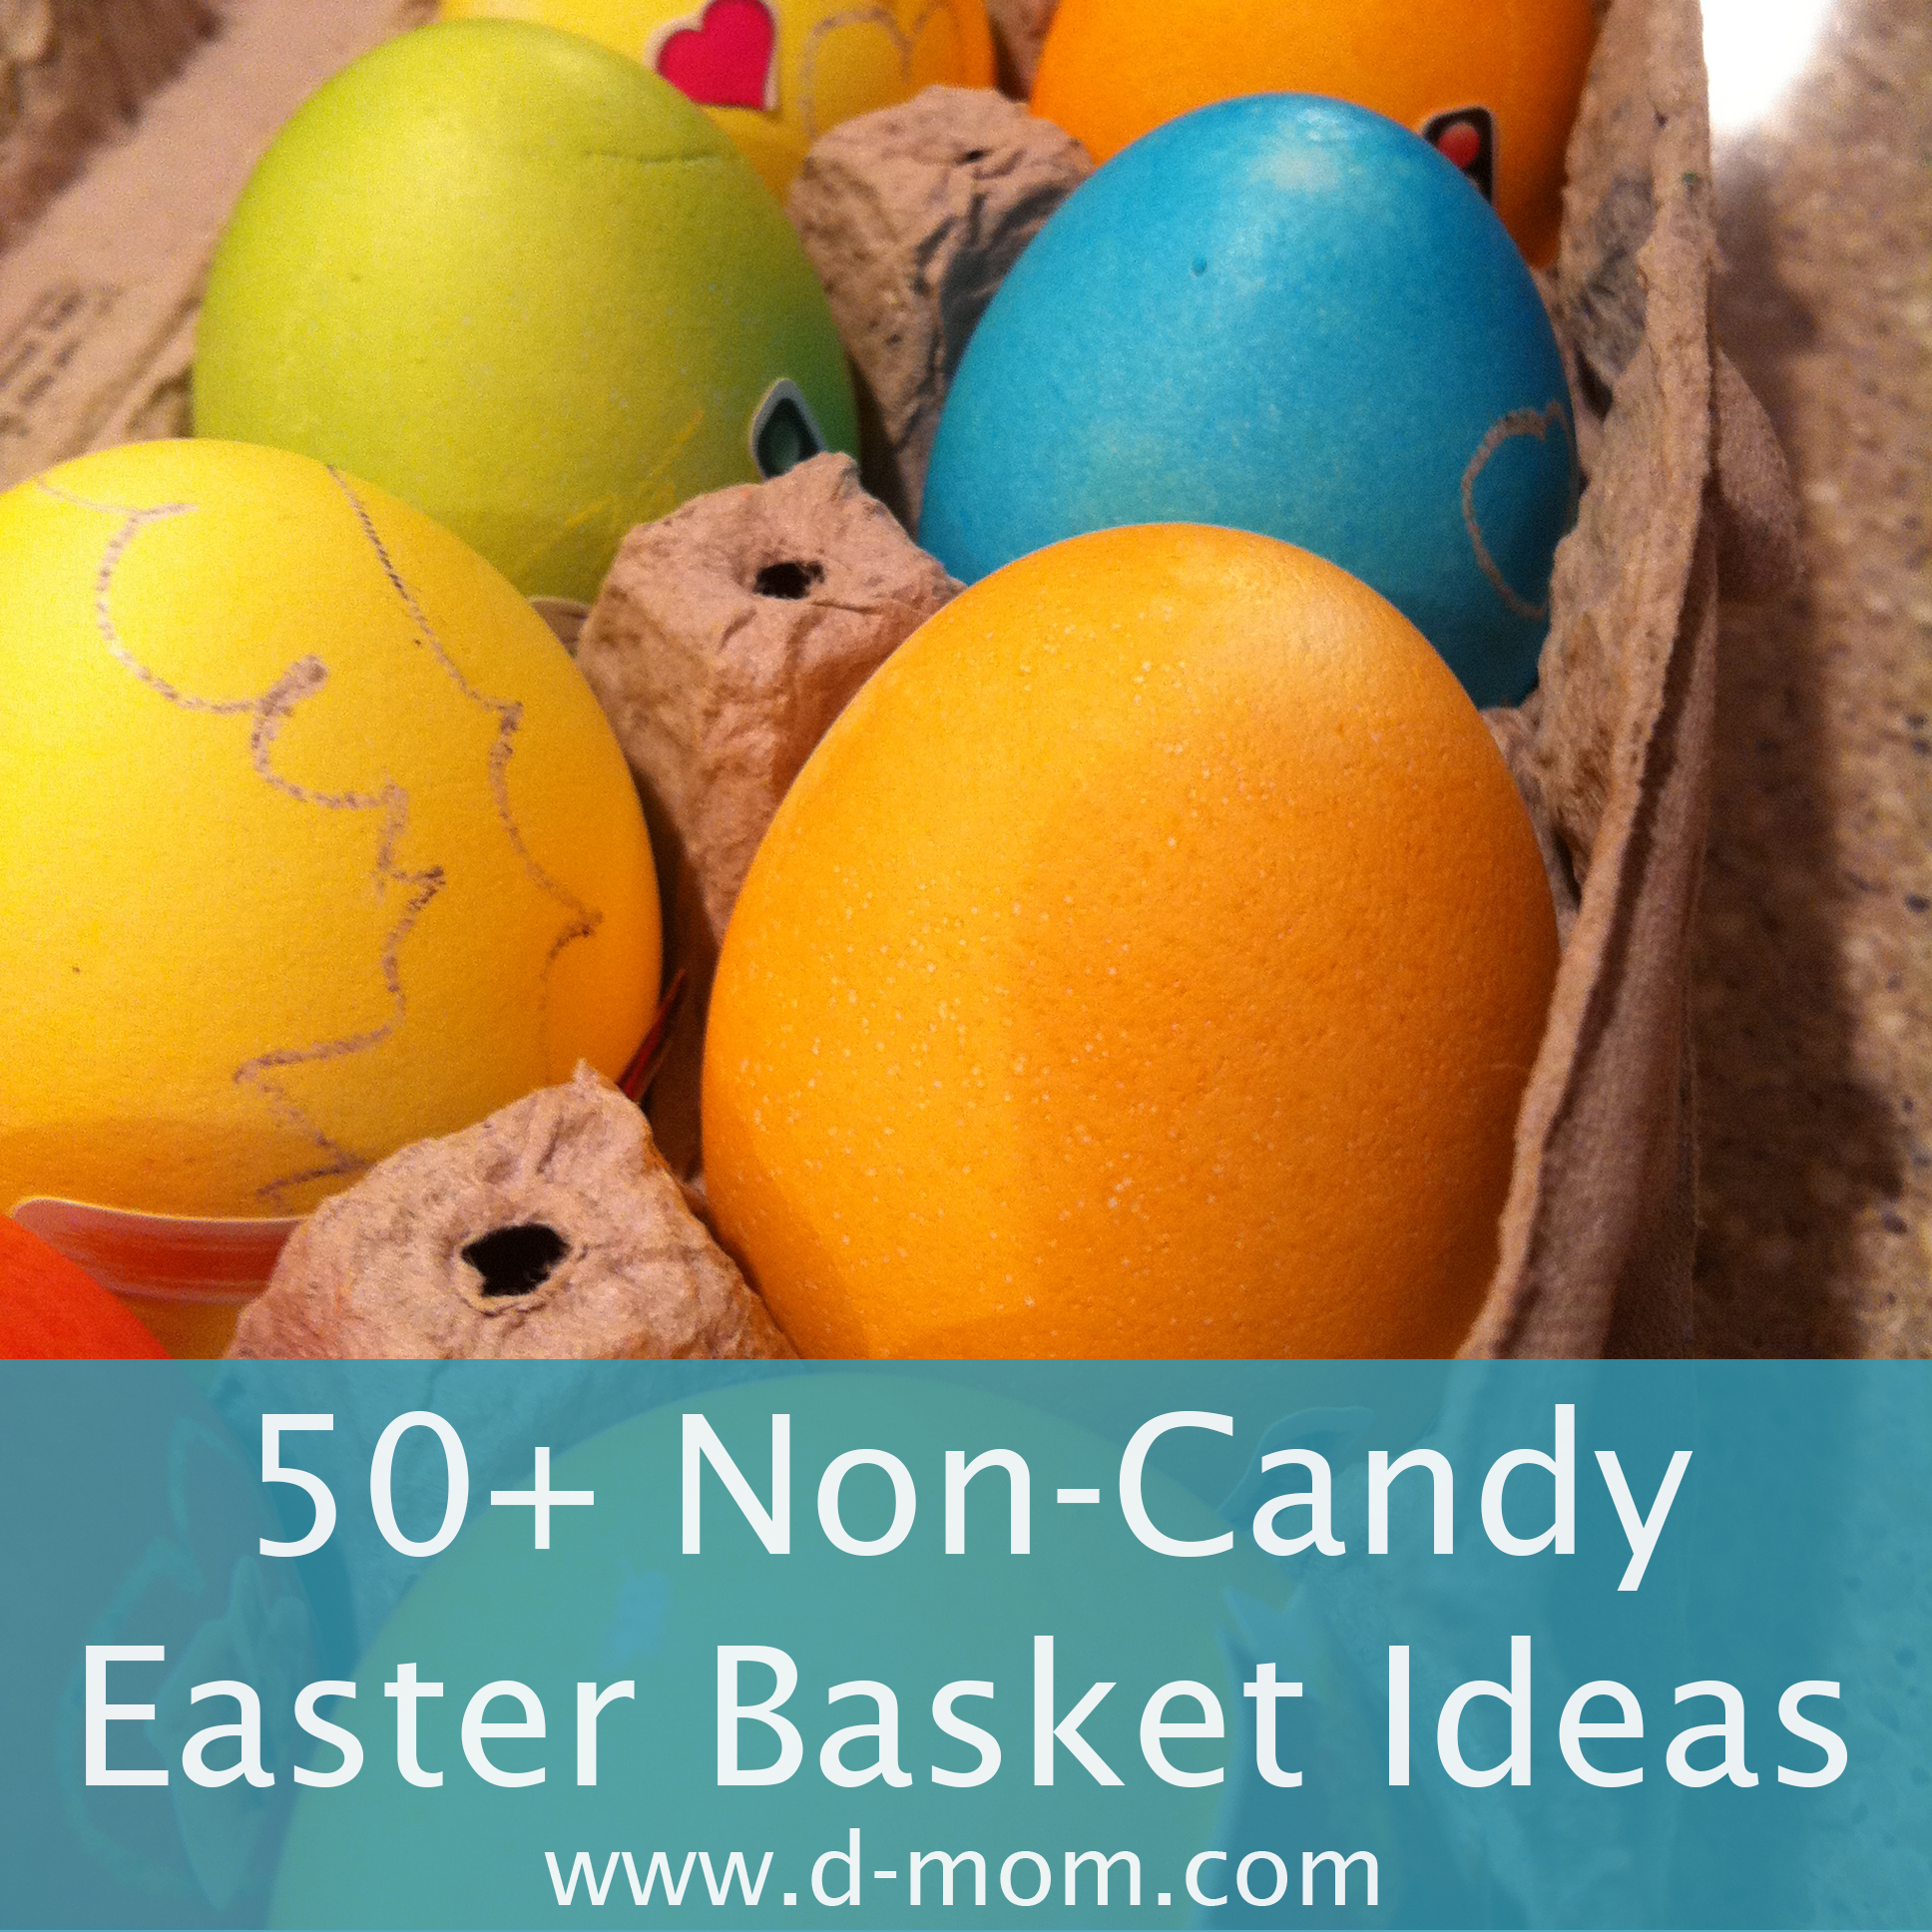 50 non candy easter ideas for kids with food allergies or type 1 non candy easter ideas here are almost 100 non candy easter basket ideas for kids with type 1 diabetes celiac disease or food allergies negle Images